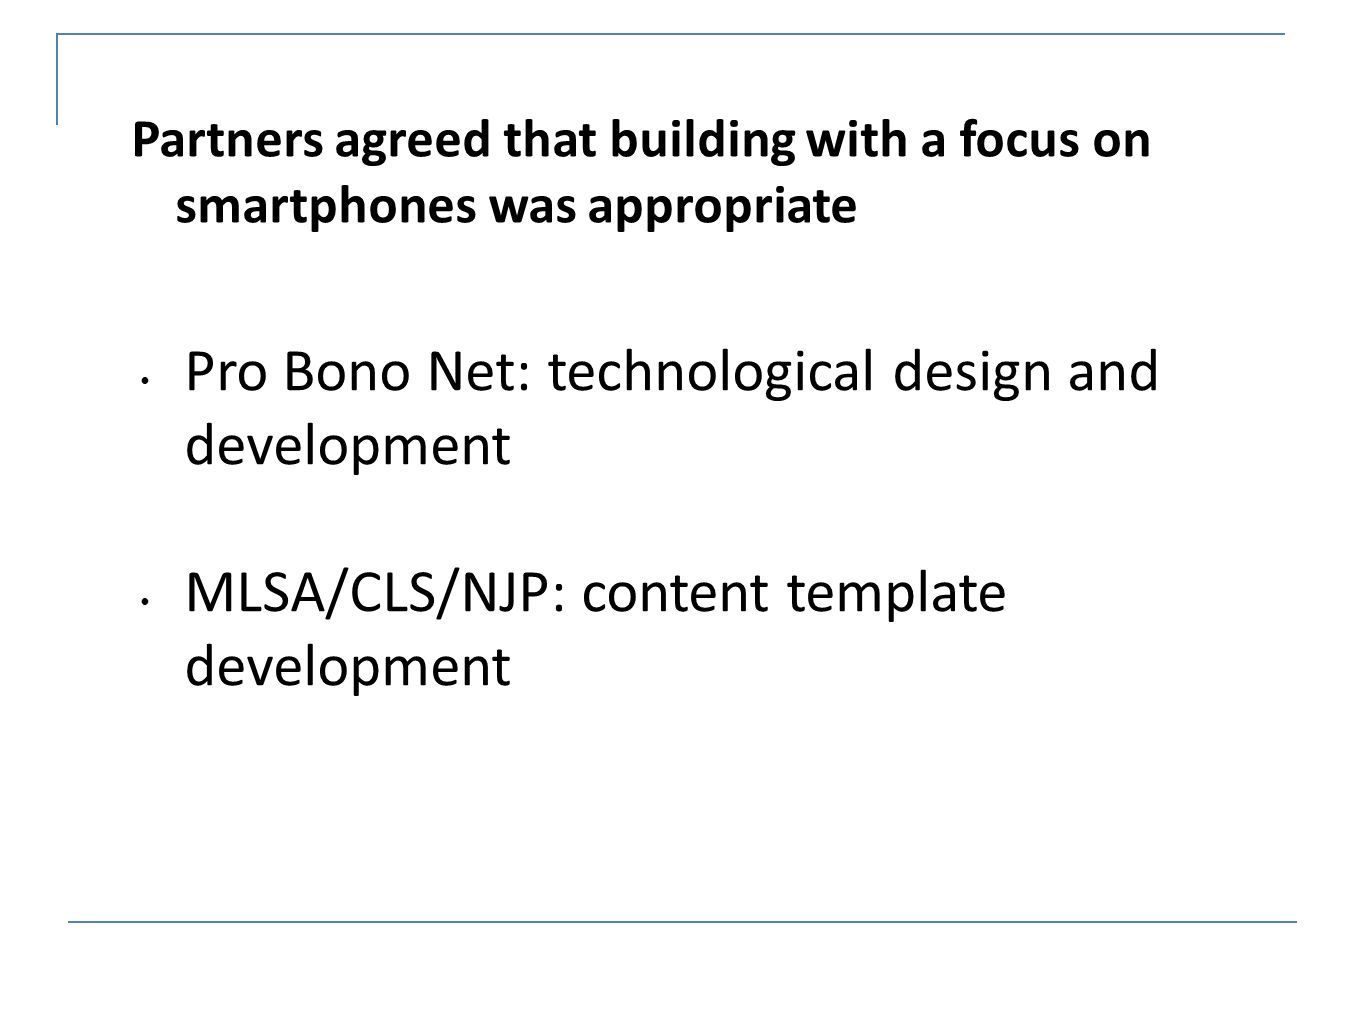 Partners agreed that building with a focus on smartphones was appropriate Pro Bono Net: technological design and development MLSA/CLS/NJP: content template development